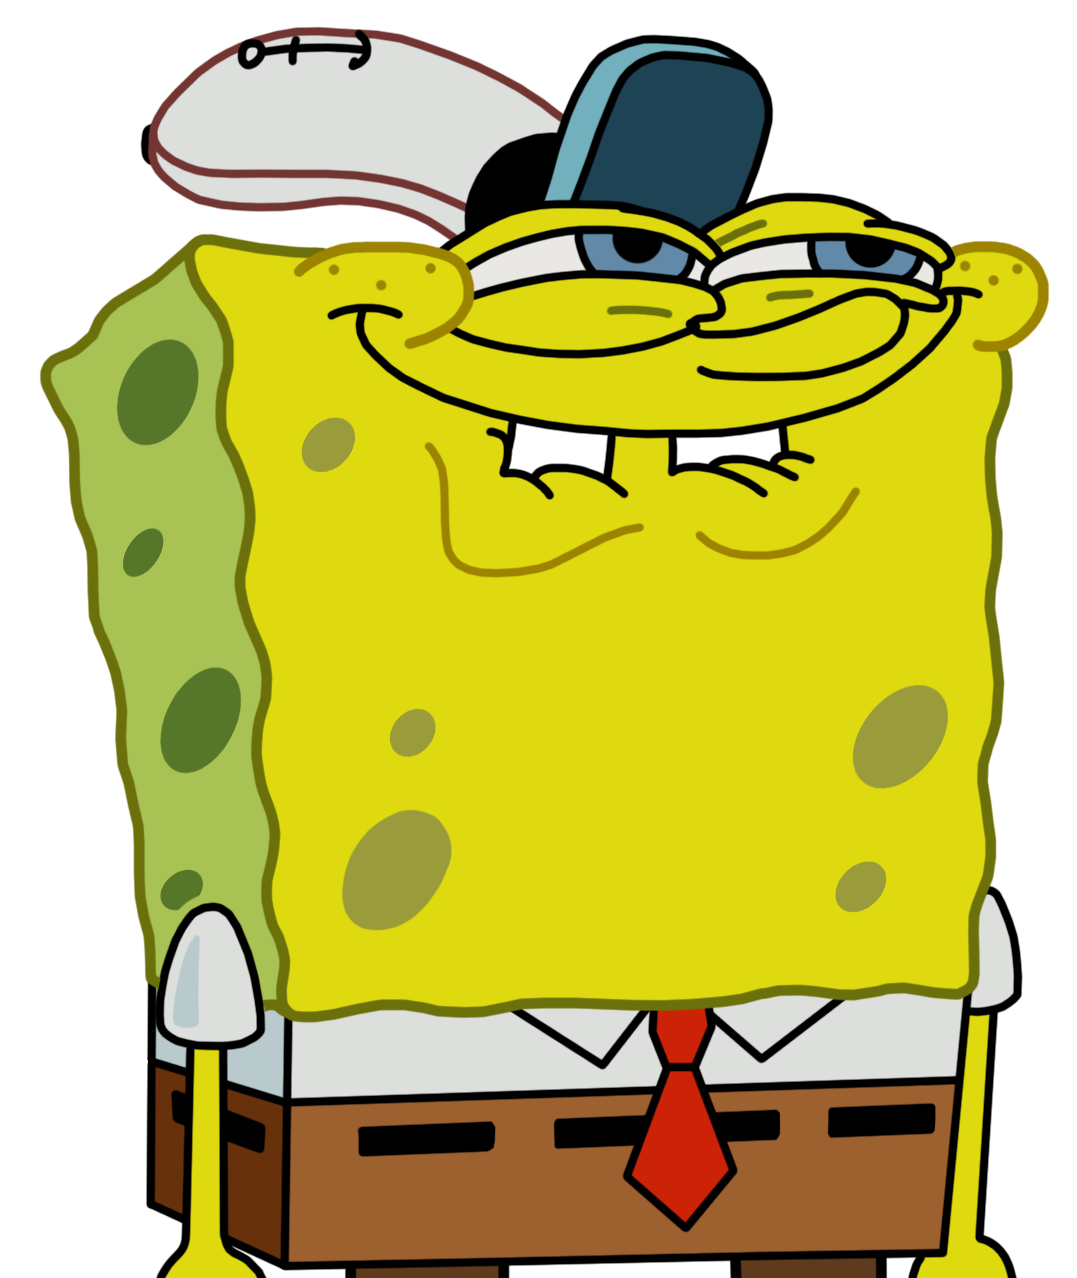 Spongebob fun png. Template you like krabby